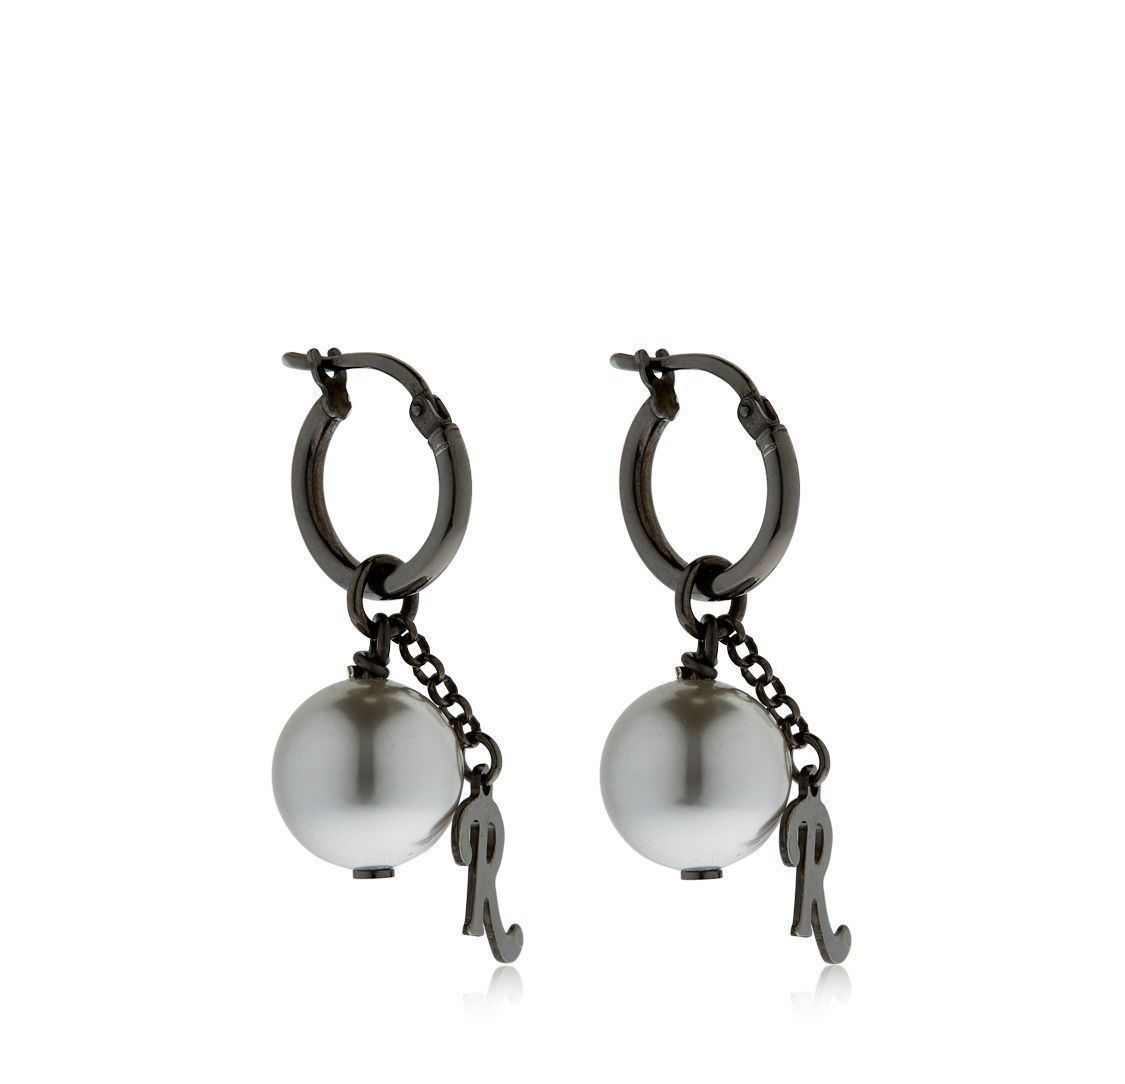 ラフシモンズ SILVER HOOP EARRINGS W/ R & BALLS